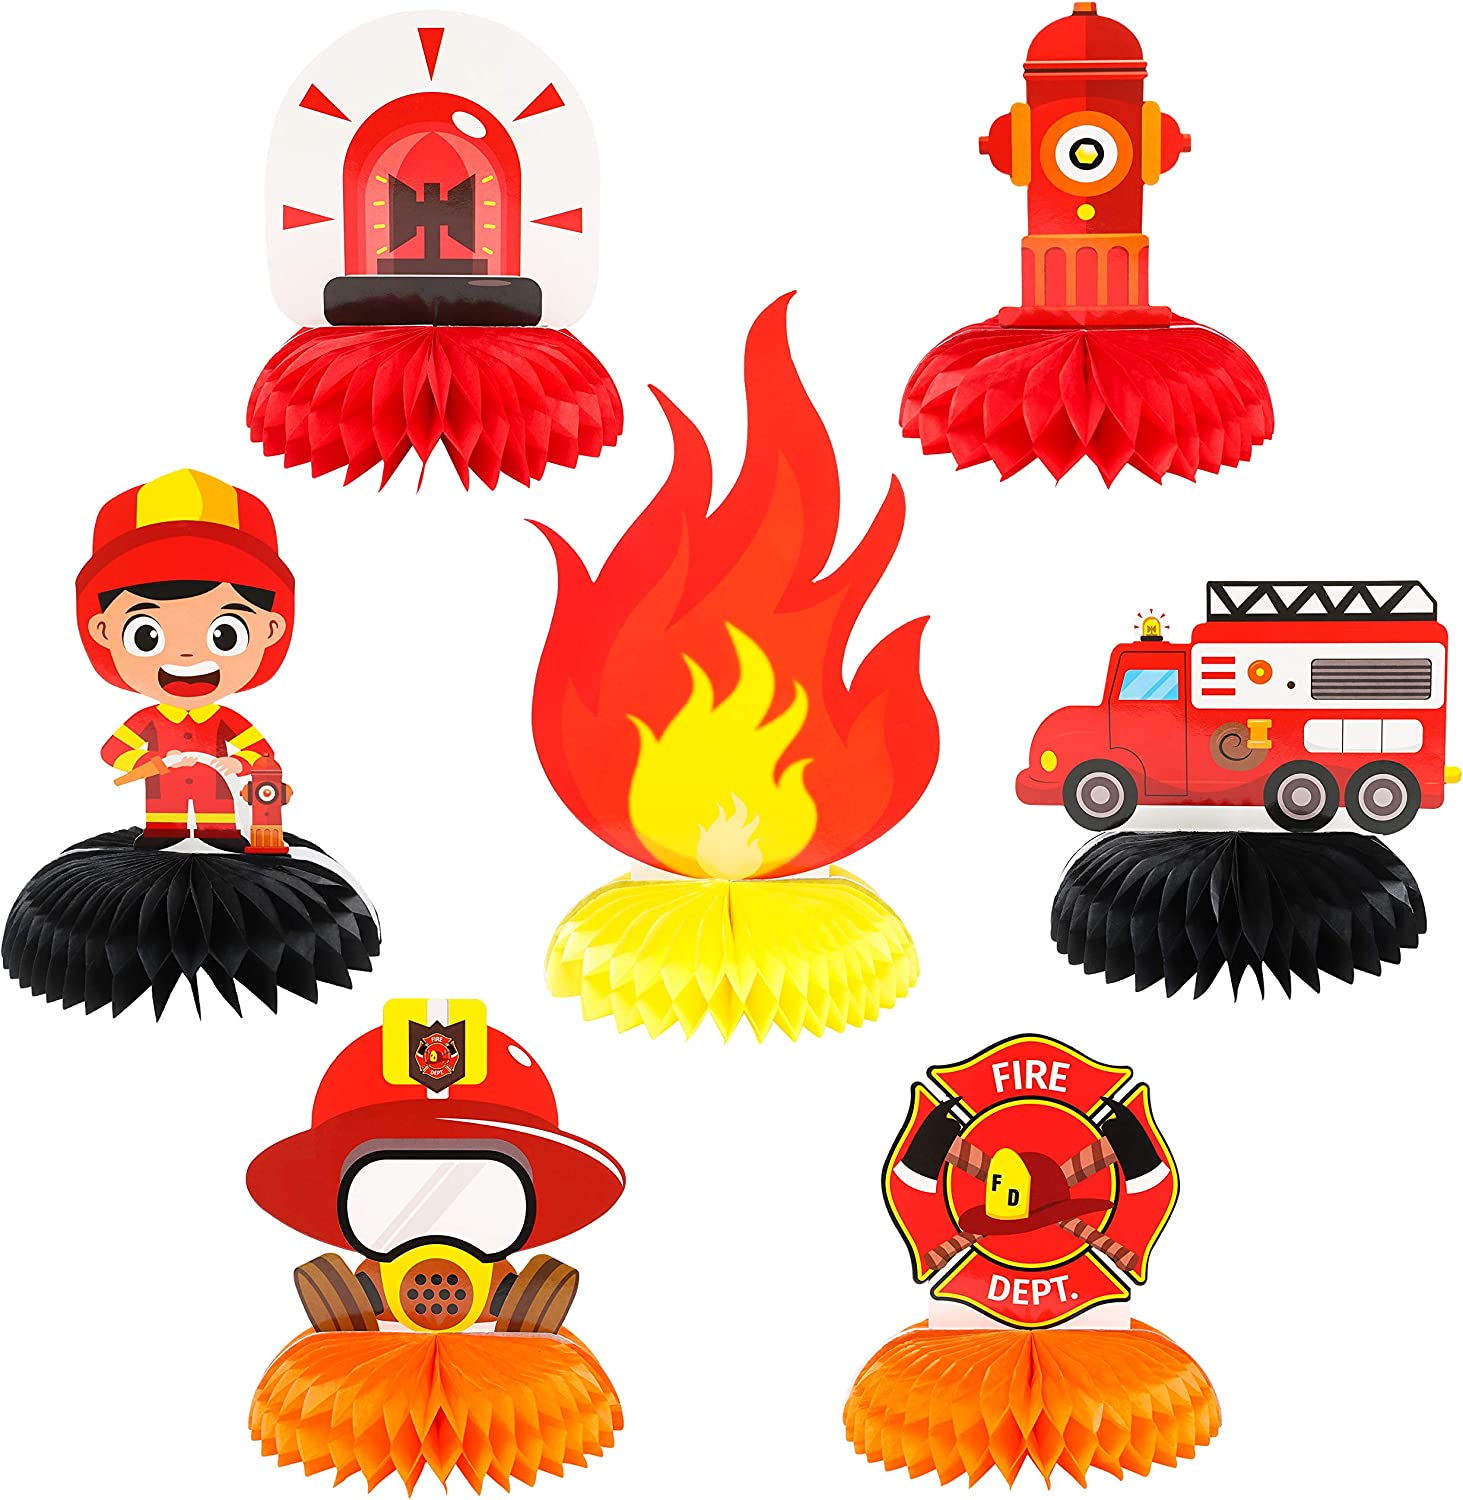 MALLMALL6 7Pcs Firefighter Honeycomb Centerpieces Fireman Themed Table Decorations Birthday Party Supplies Firetruck Fire Hat Extinguisher Themed Party Favors Room Decor Photo Booth Props for Kids